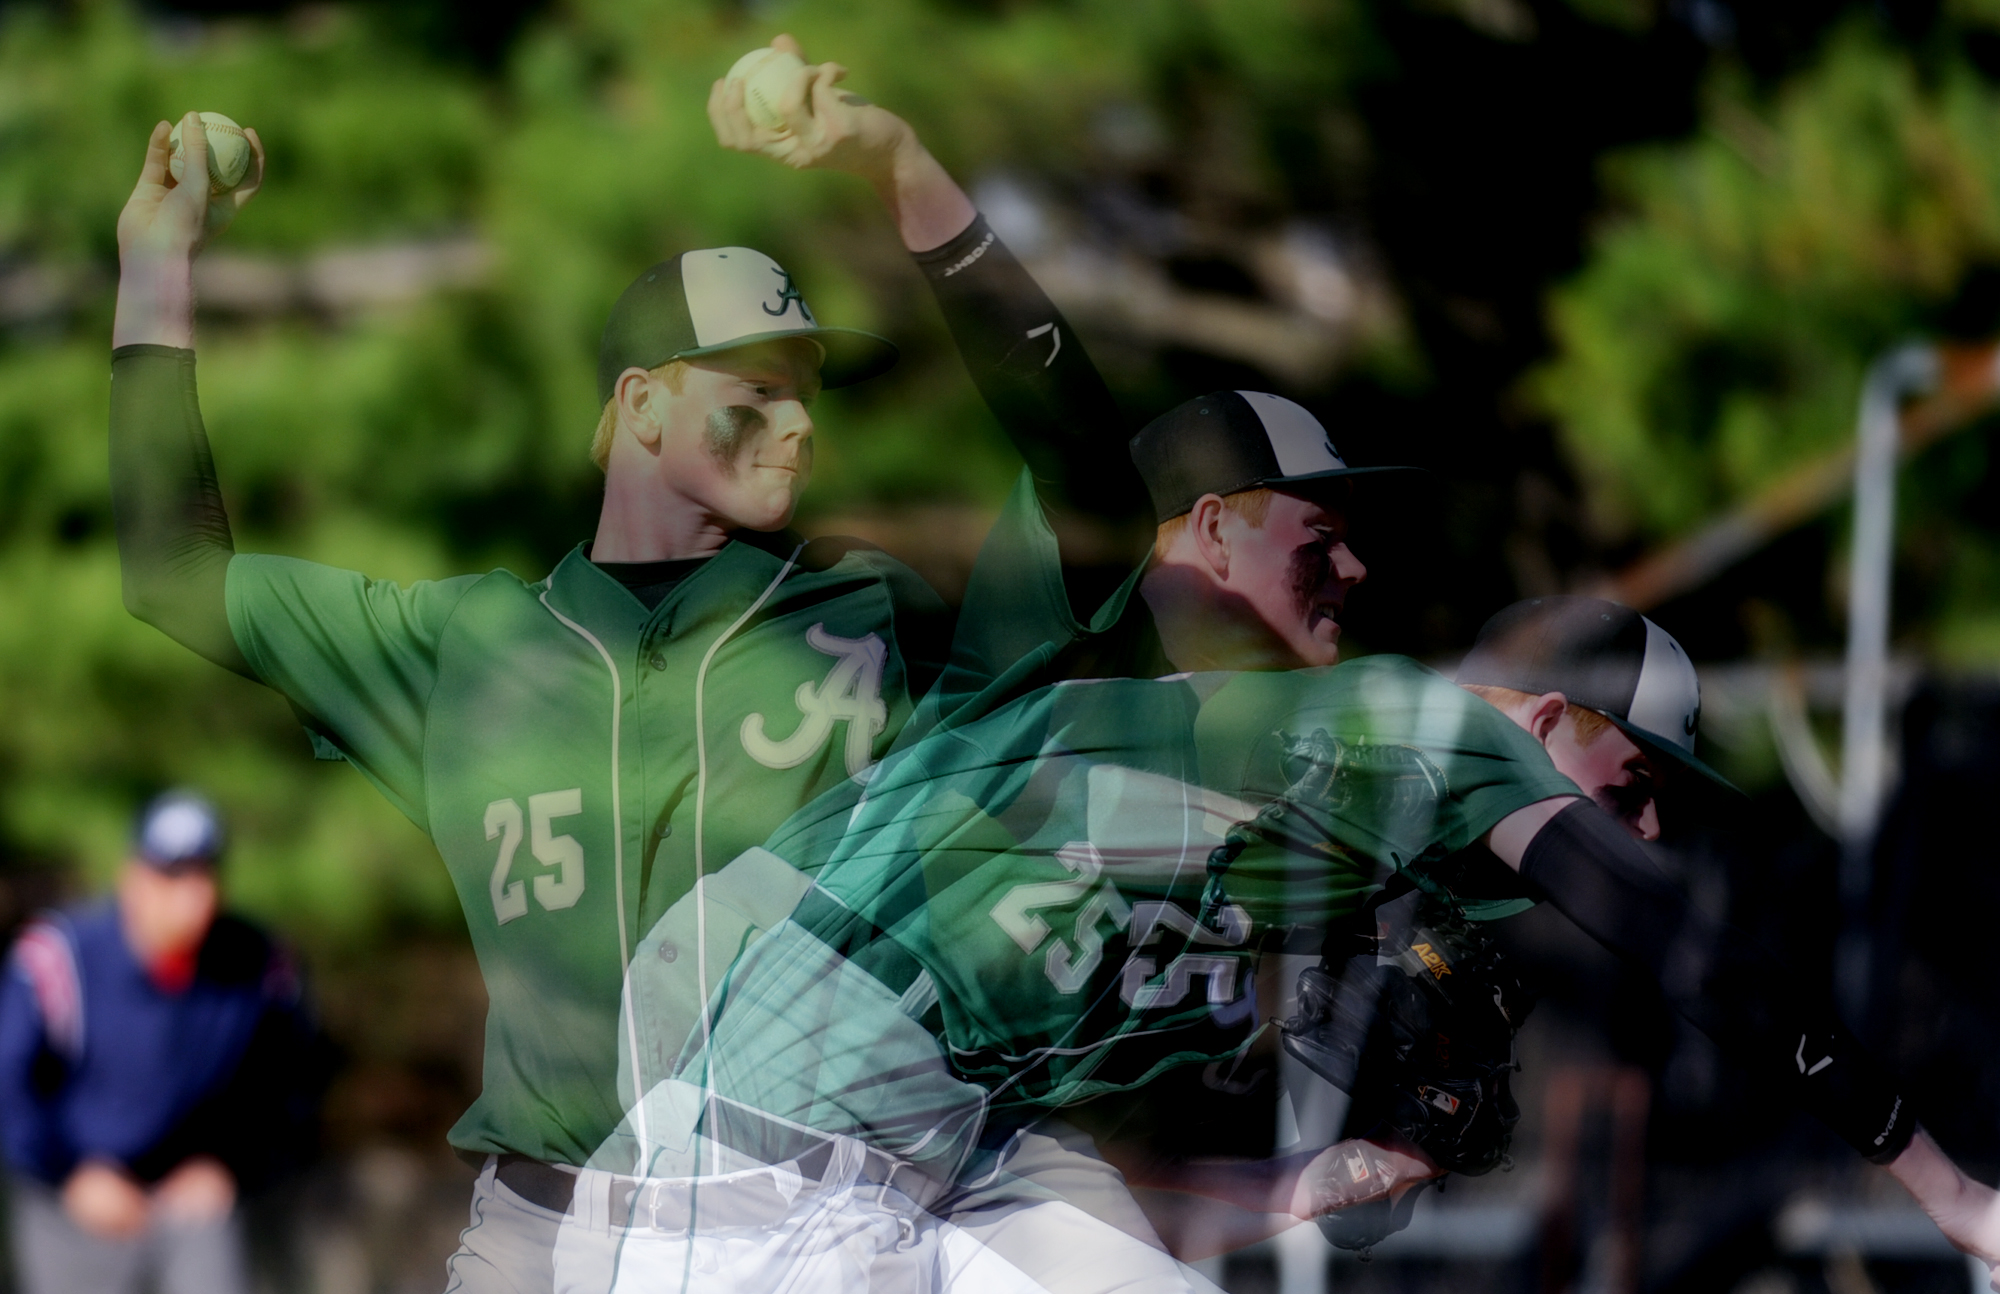 Photo compilations of Atholton vs. Mt. Hebron baseball